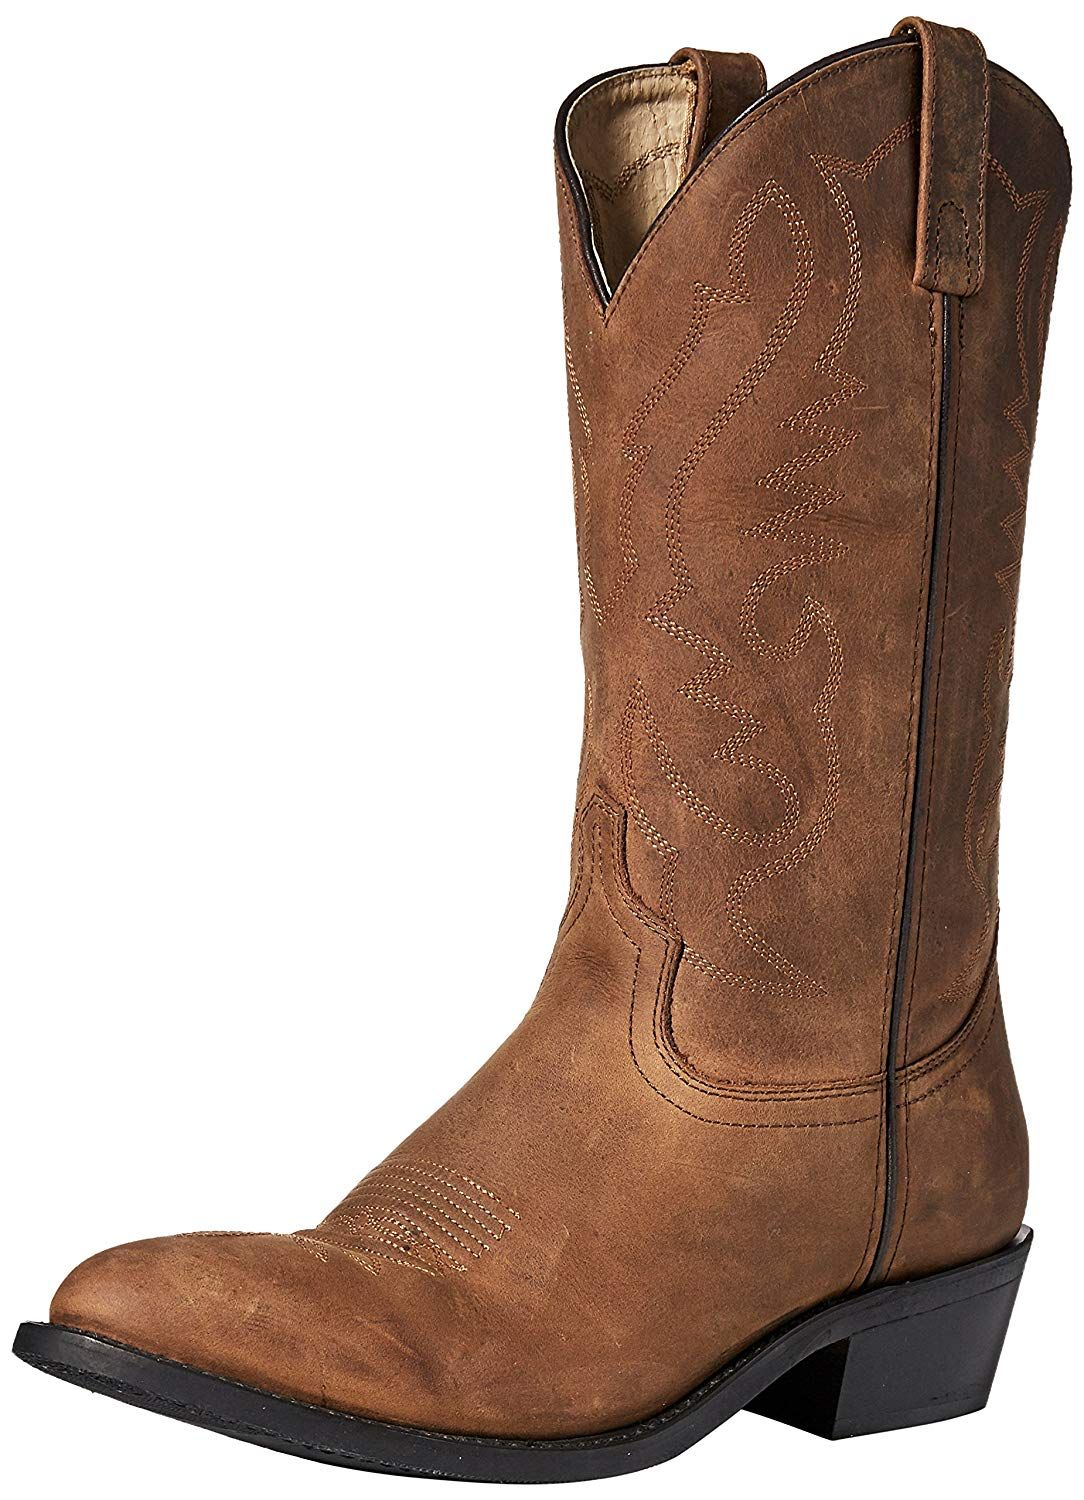 9e0619facb8 Smoky Mountain Boots Kids Child Denver Leather Western Boot ...